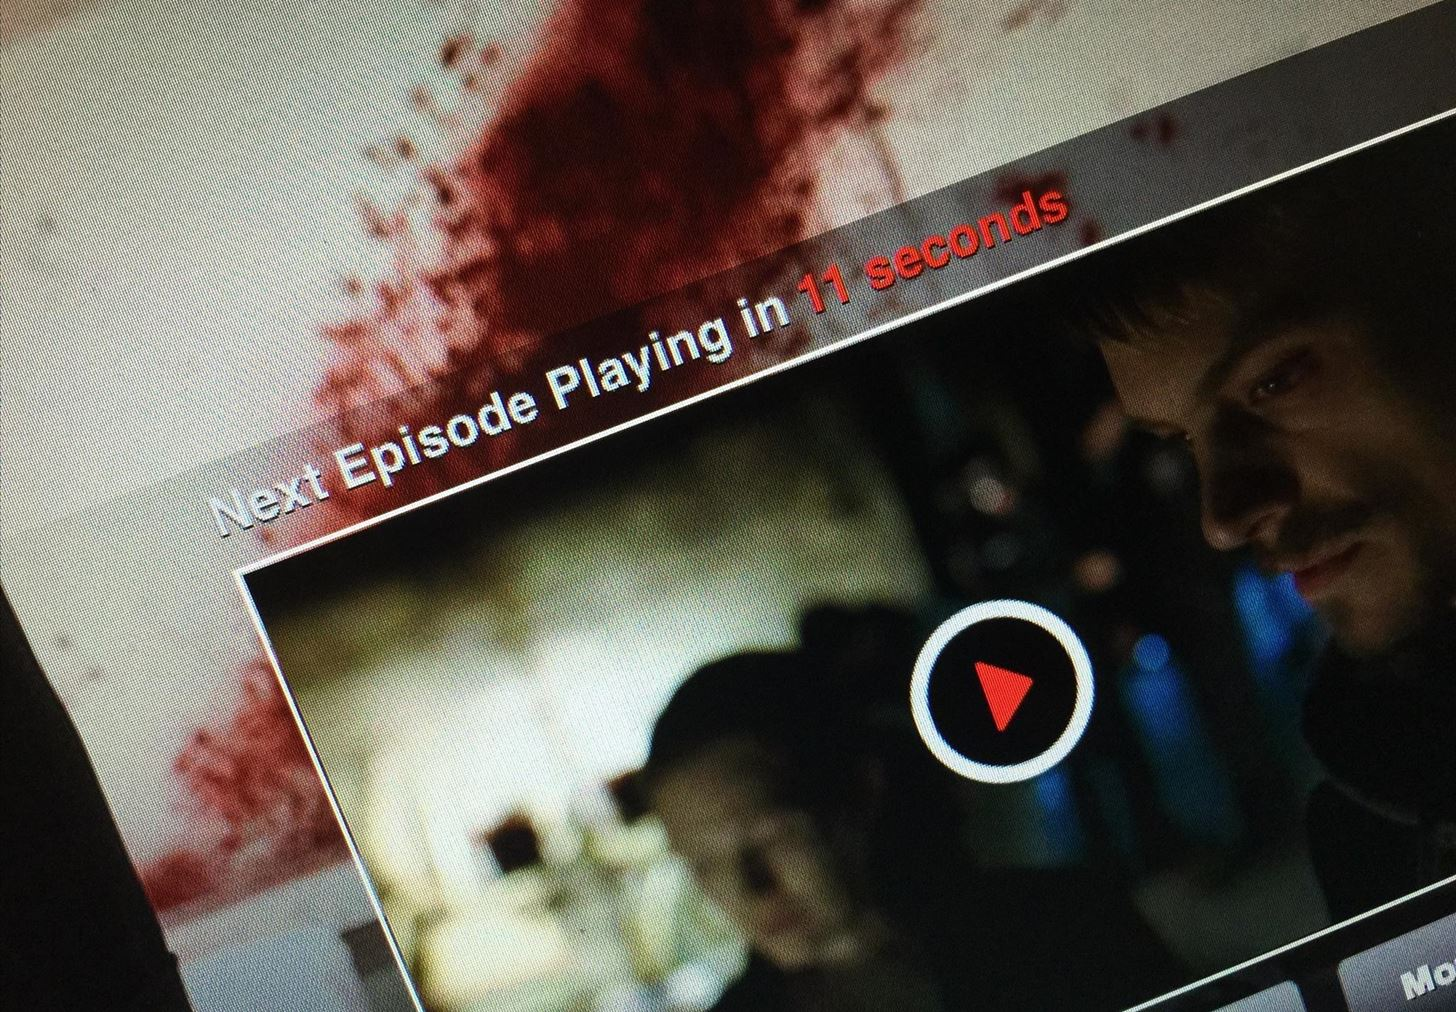 Prevent Binge-Watching by Disabling Netflix's Sneaky Auto-Play Feature